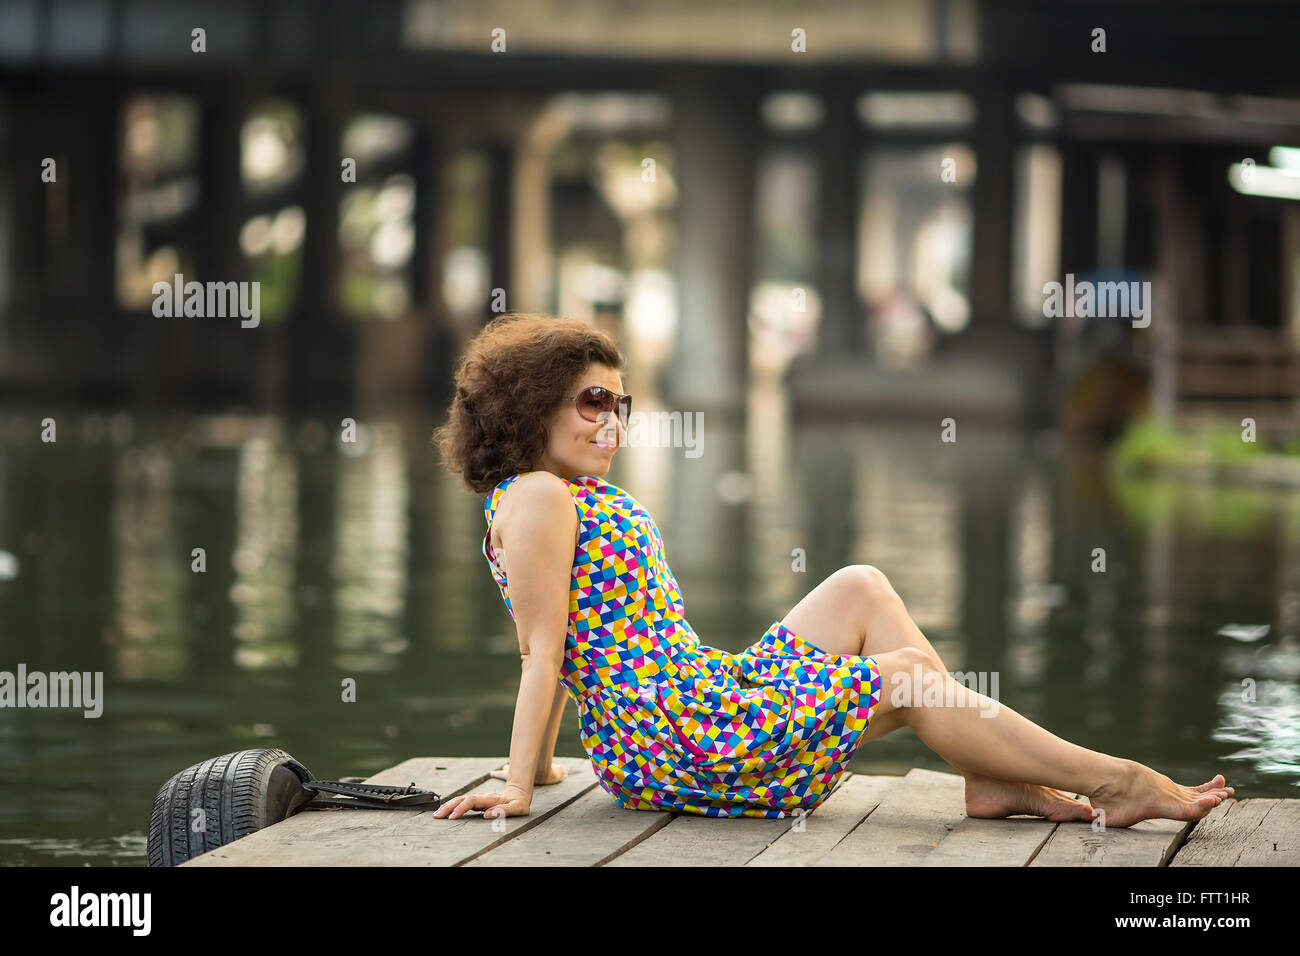 Fashionable young asian woman in sunglasses sitting on wooden river embankment. - Stock Image